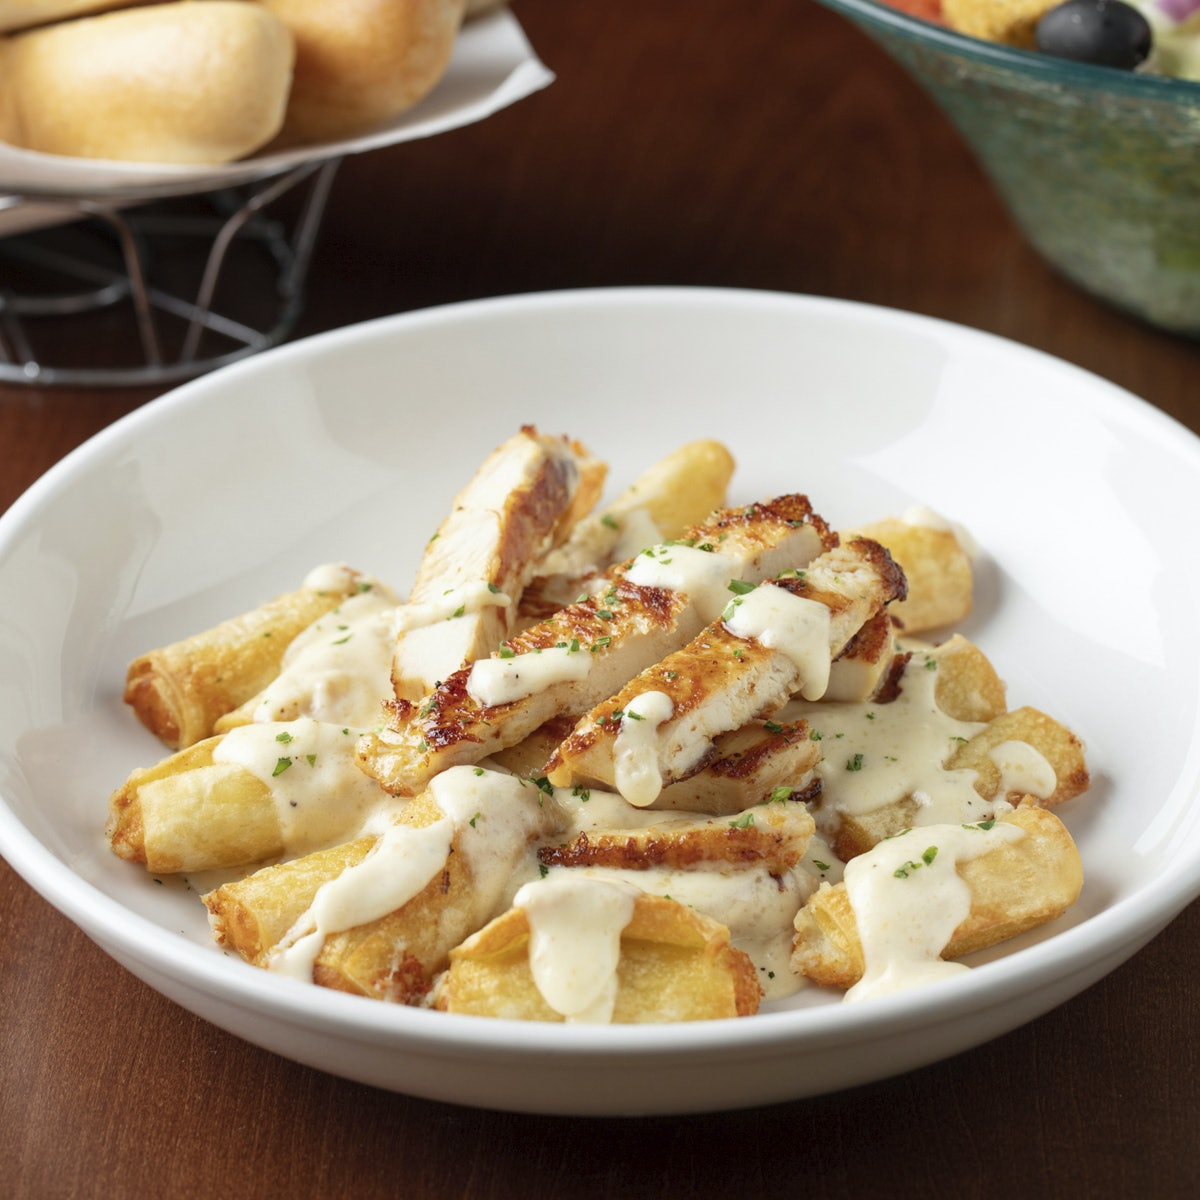 Olive Garden Has Never Ending Stuffed Pastas In 4 Flavors That Will Make You Drool